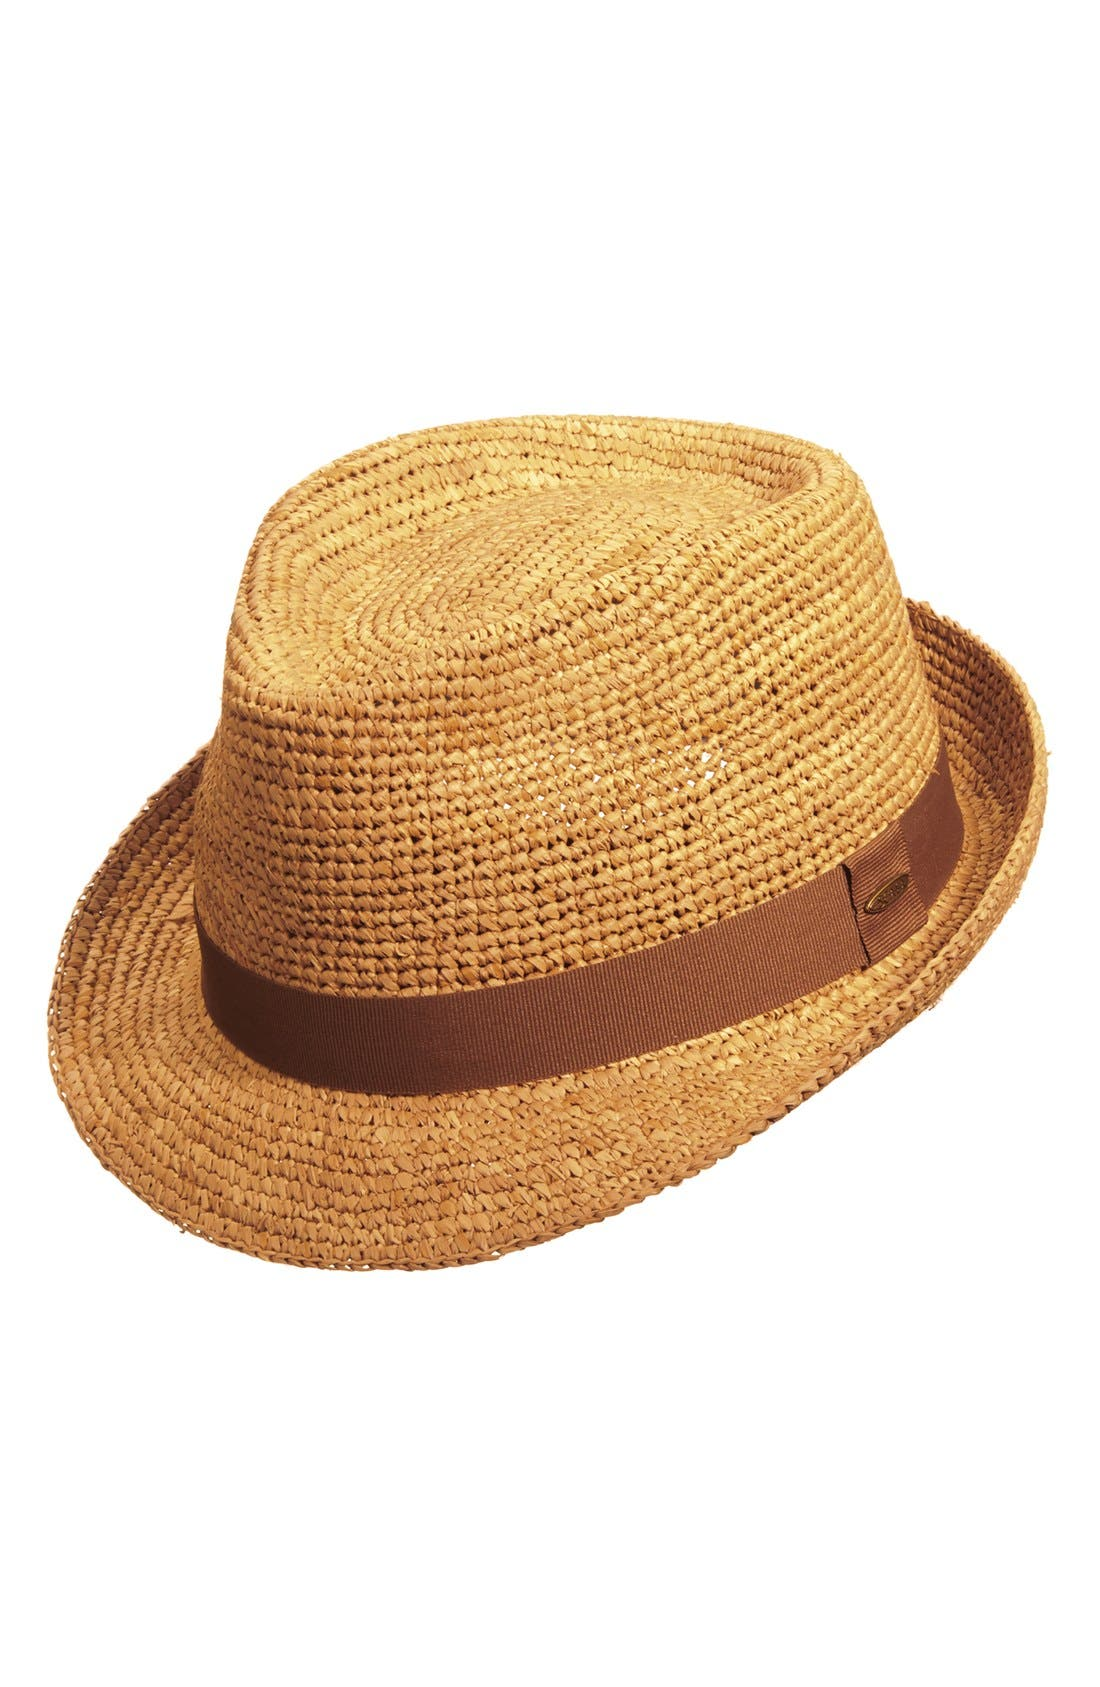 Main Image - Scala Straw Trilby